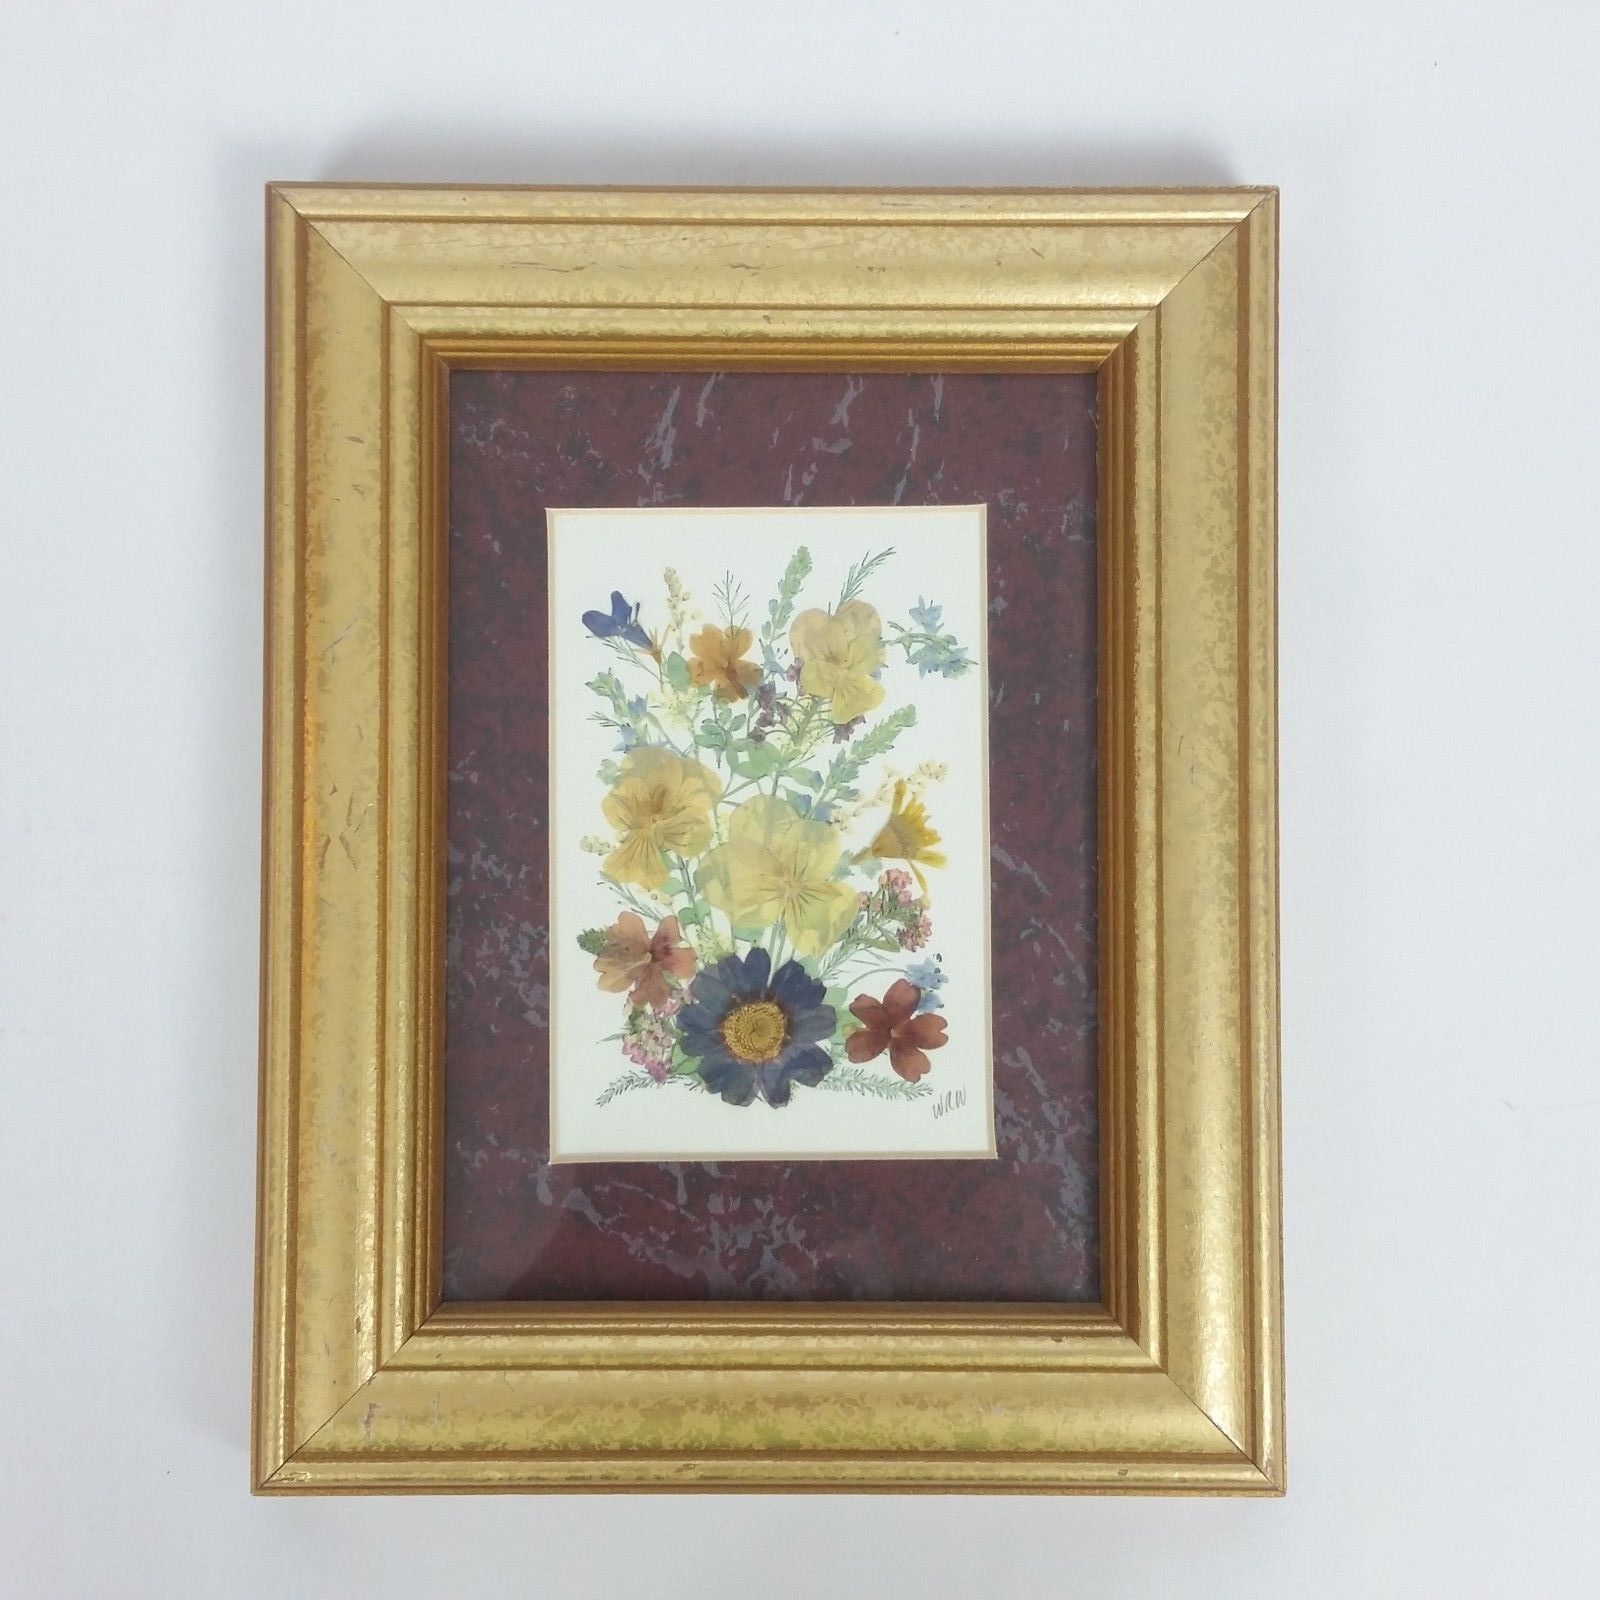 Framed Pressed Dried Flower Art Picture Mixed Media Collage Signed